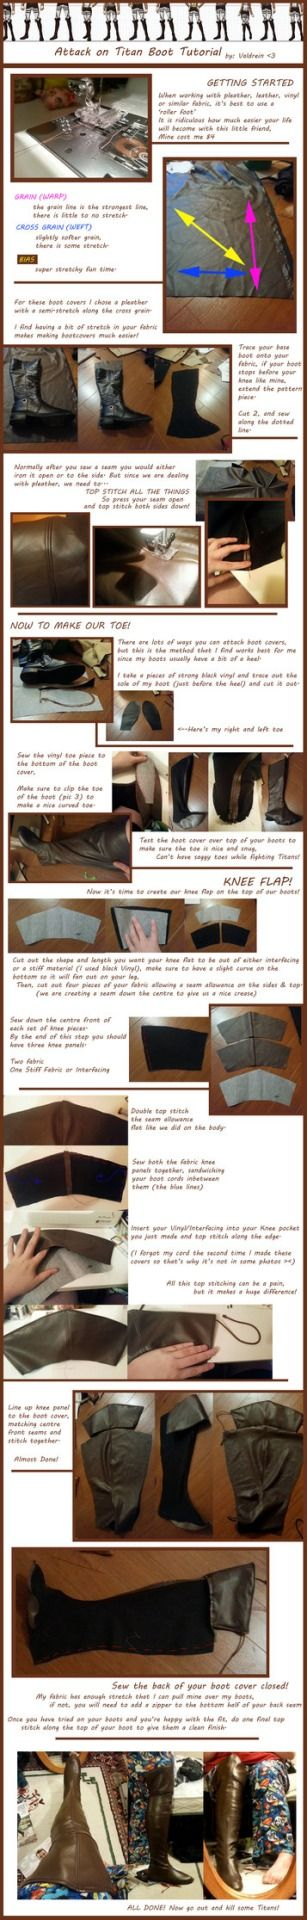 Attack on Titan Boot Cover Tutorial by  Valdrein See the full tutorial at: http://valdrein.deviantart.com/art/Attack-on-Titan-Boot-Cover-Tutorial-405463439